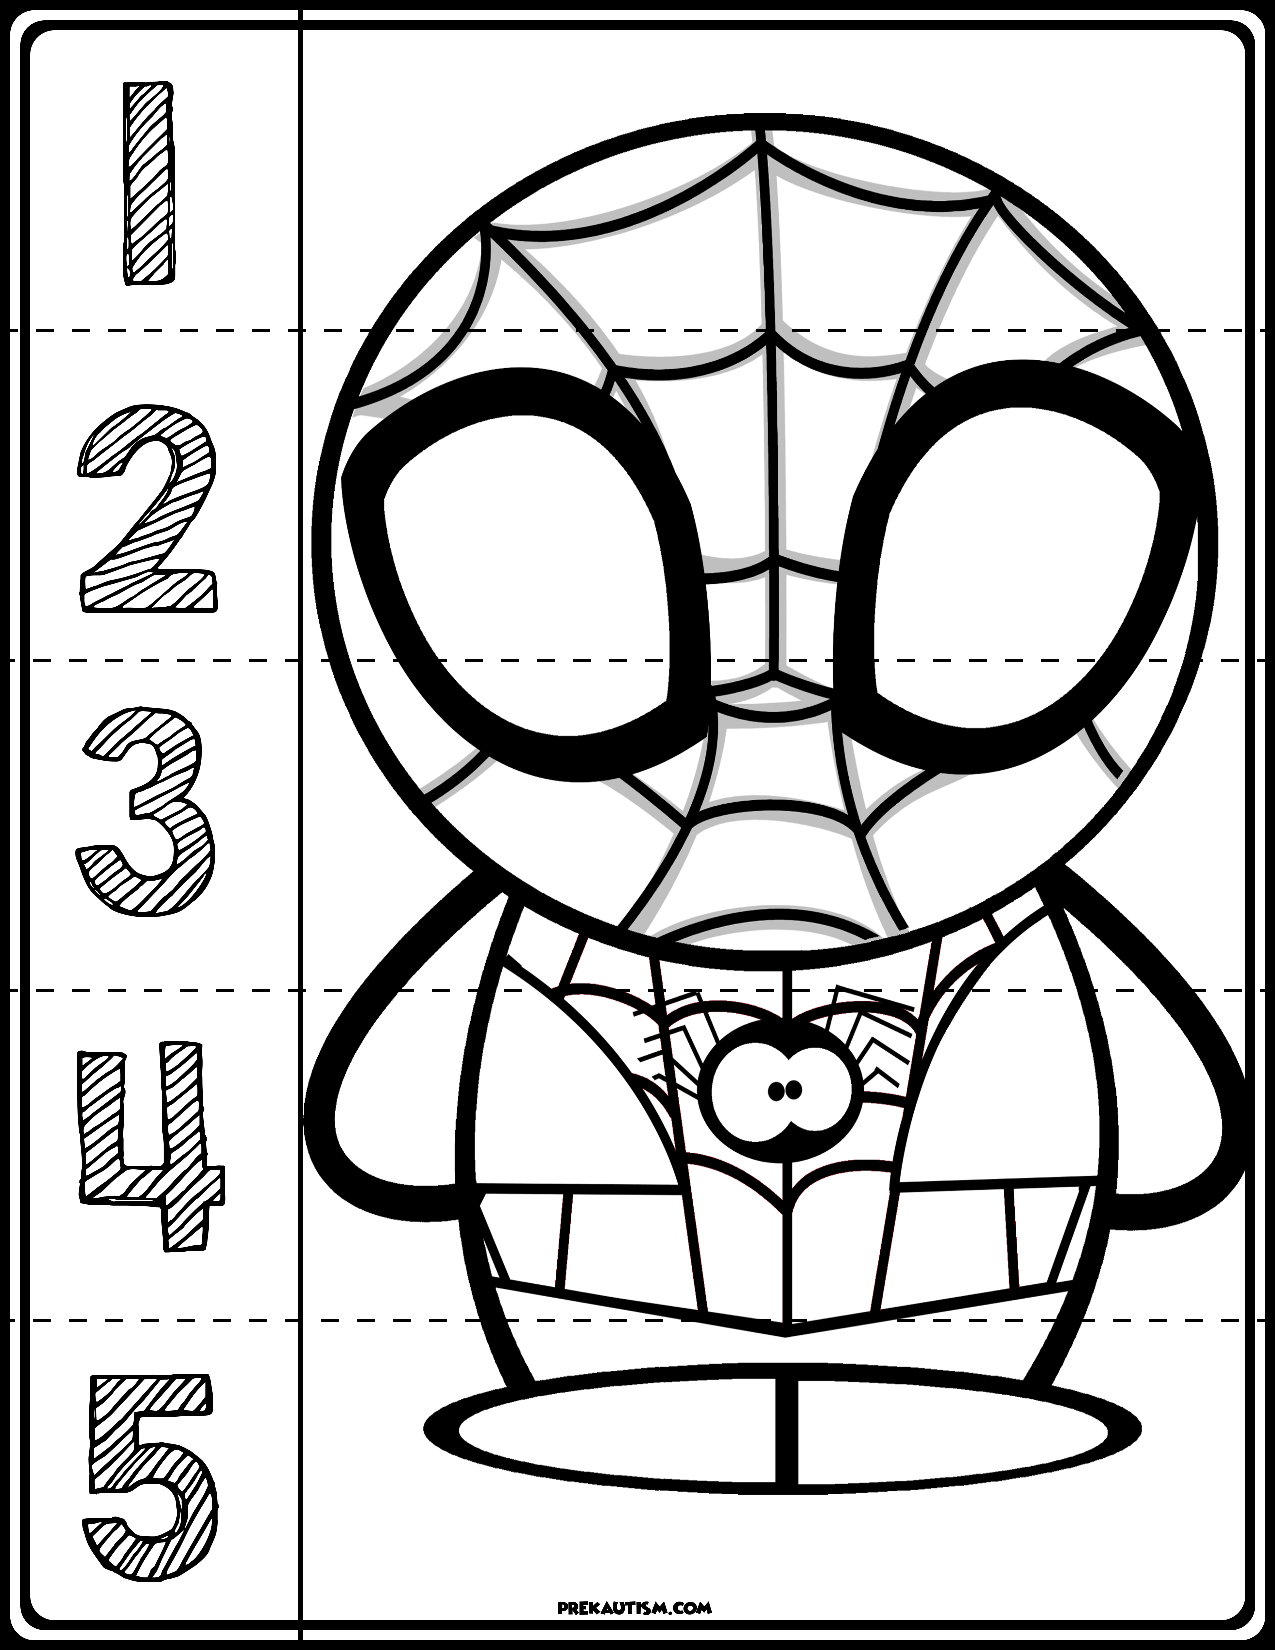 1 Teach Counting Skills With These Superheroes Great For Teaching Number Recognition Fo Superhero Math Activities Superhero Preschool Super Hero Activities [ 1650 x 1275 Pixel ]